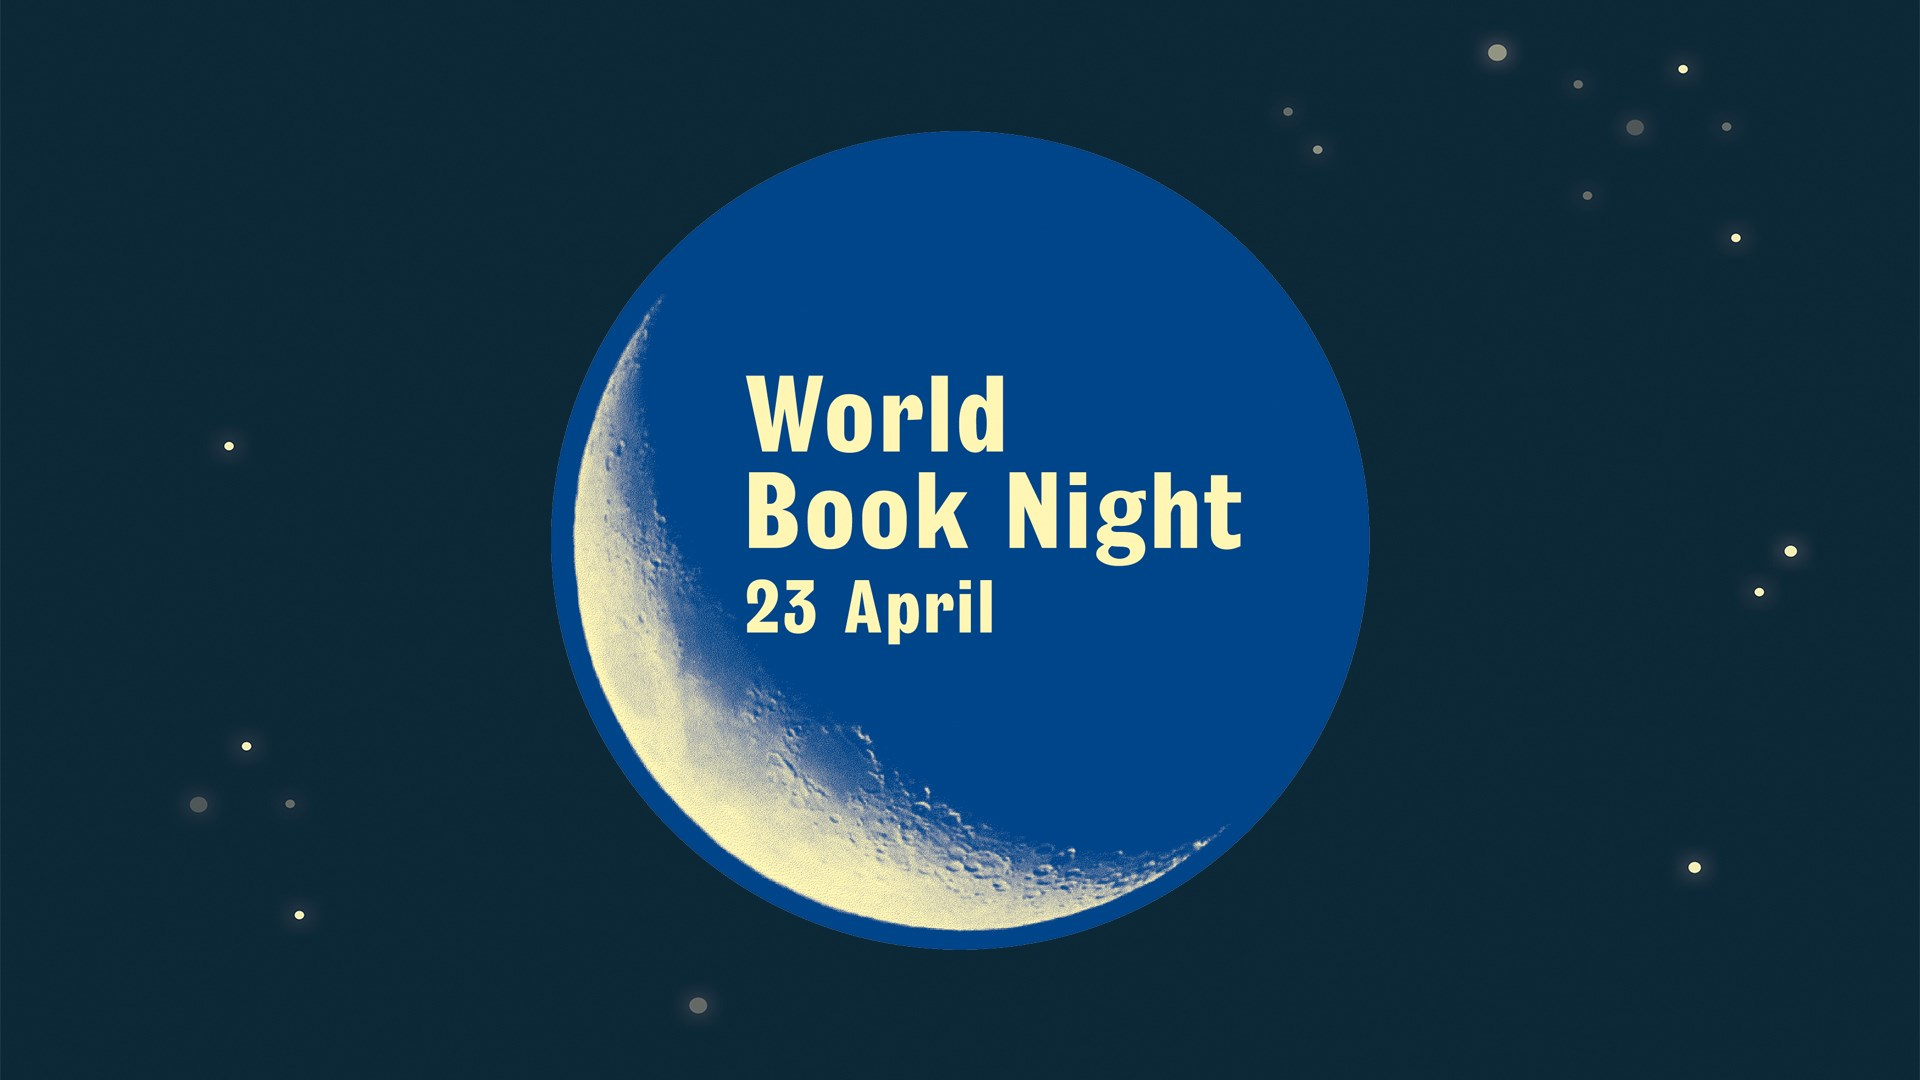 Coventry & Warwickshire celebrate World Book Night 2017